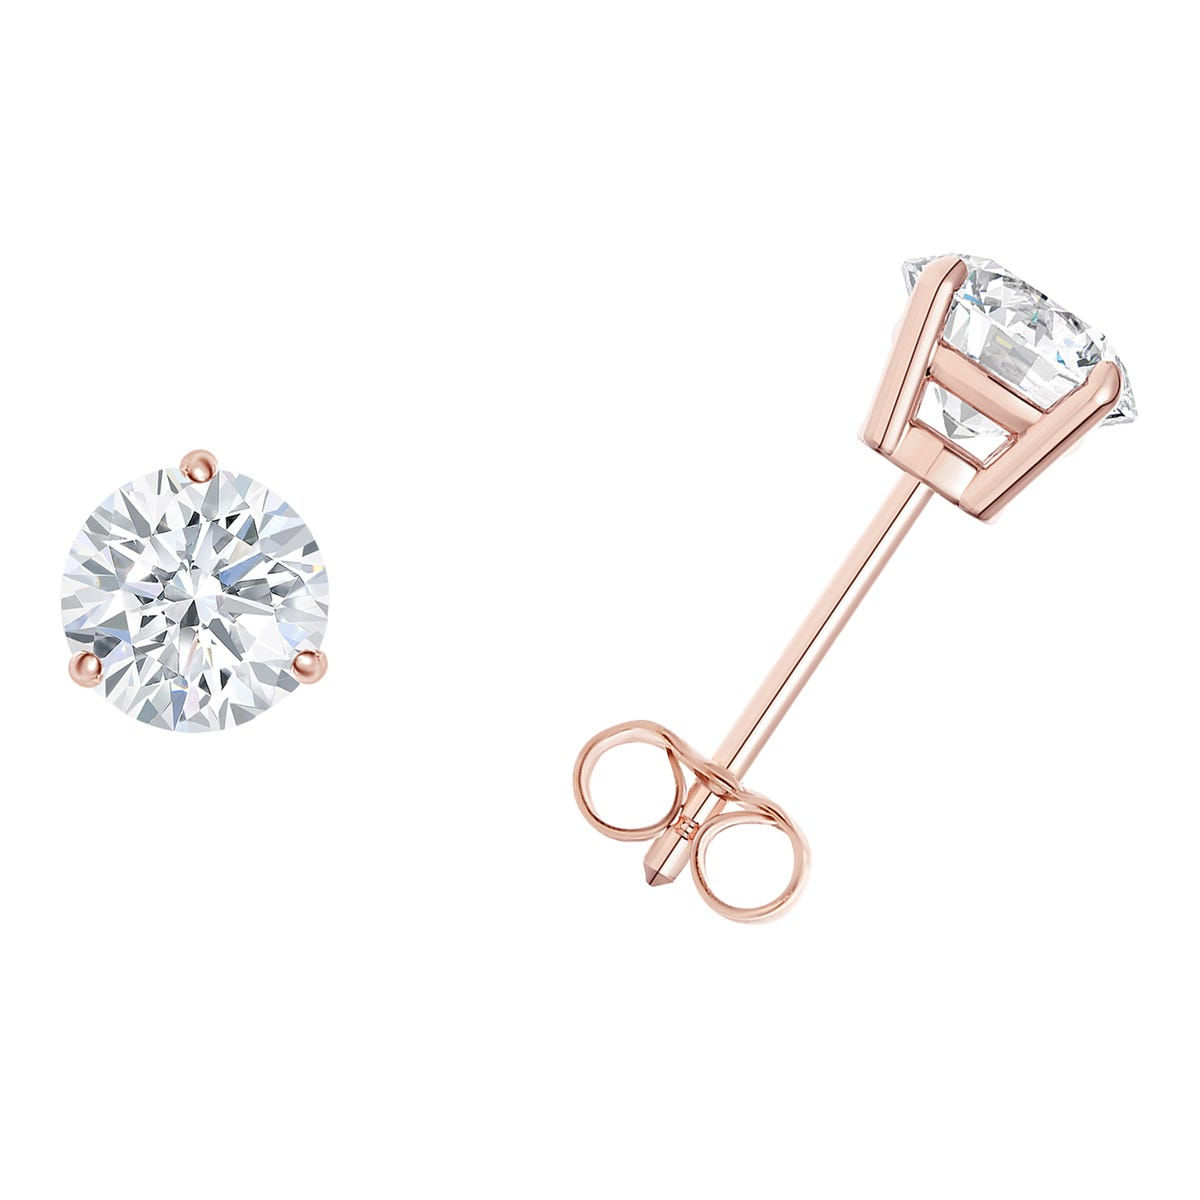 1/4 CTTW Round Diamond Solitaire Stud 3-prong Earrings in 18K Rose Gold (I-I2) IGI Certified